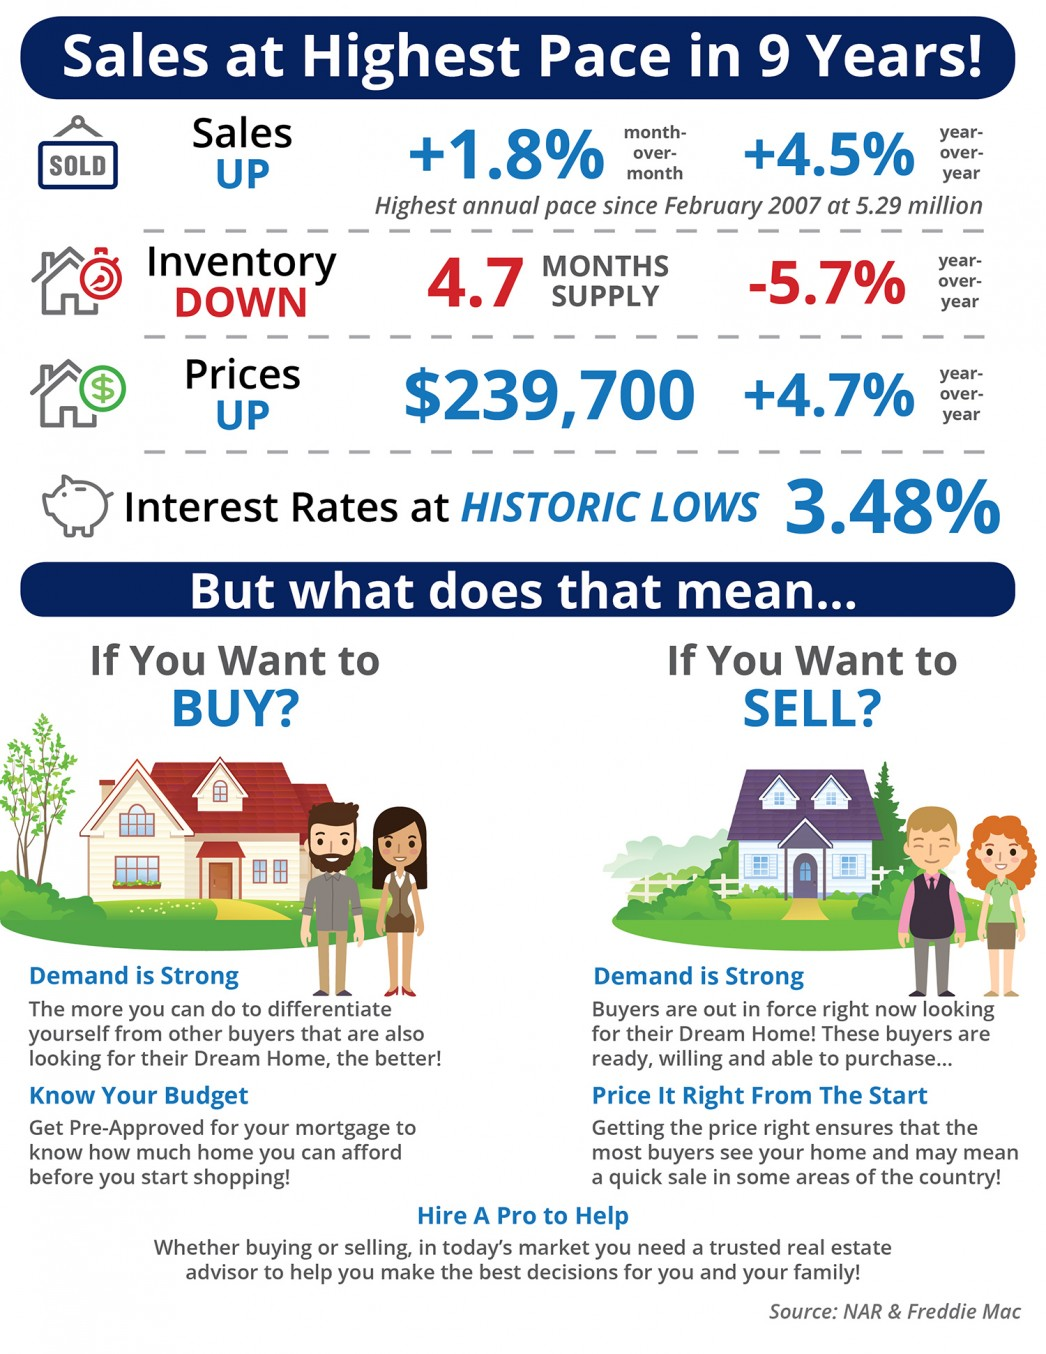 Sales at Highest Pace in 9 Years [INFOGRAPHIC] | MyKCM